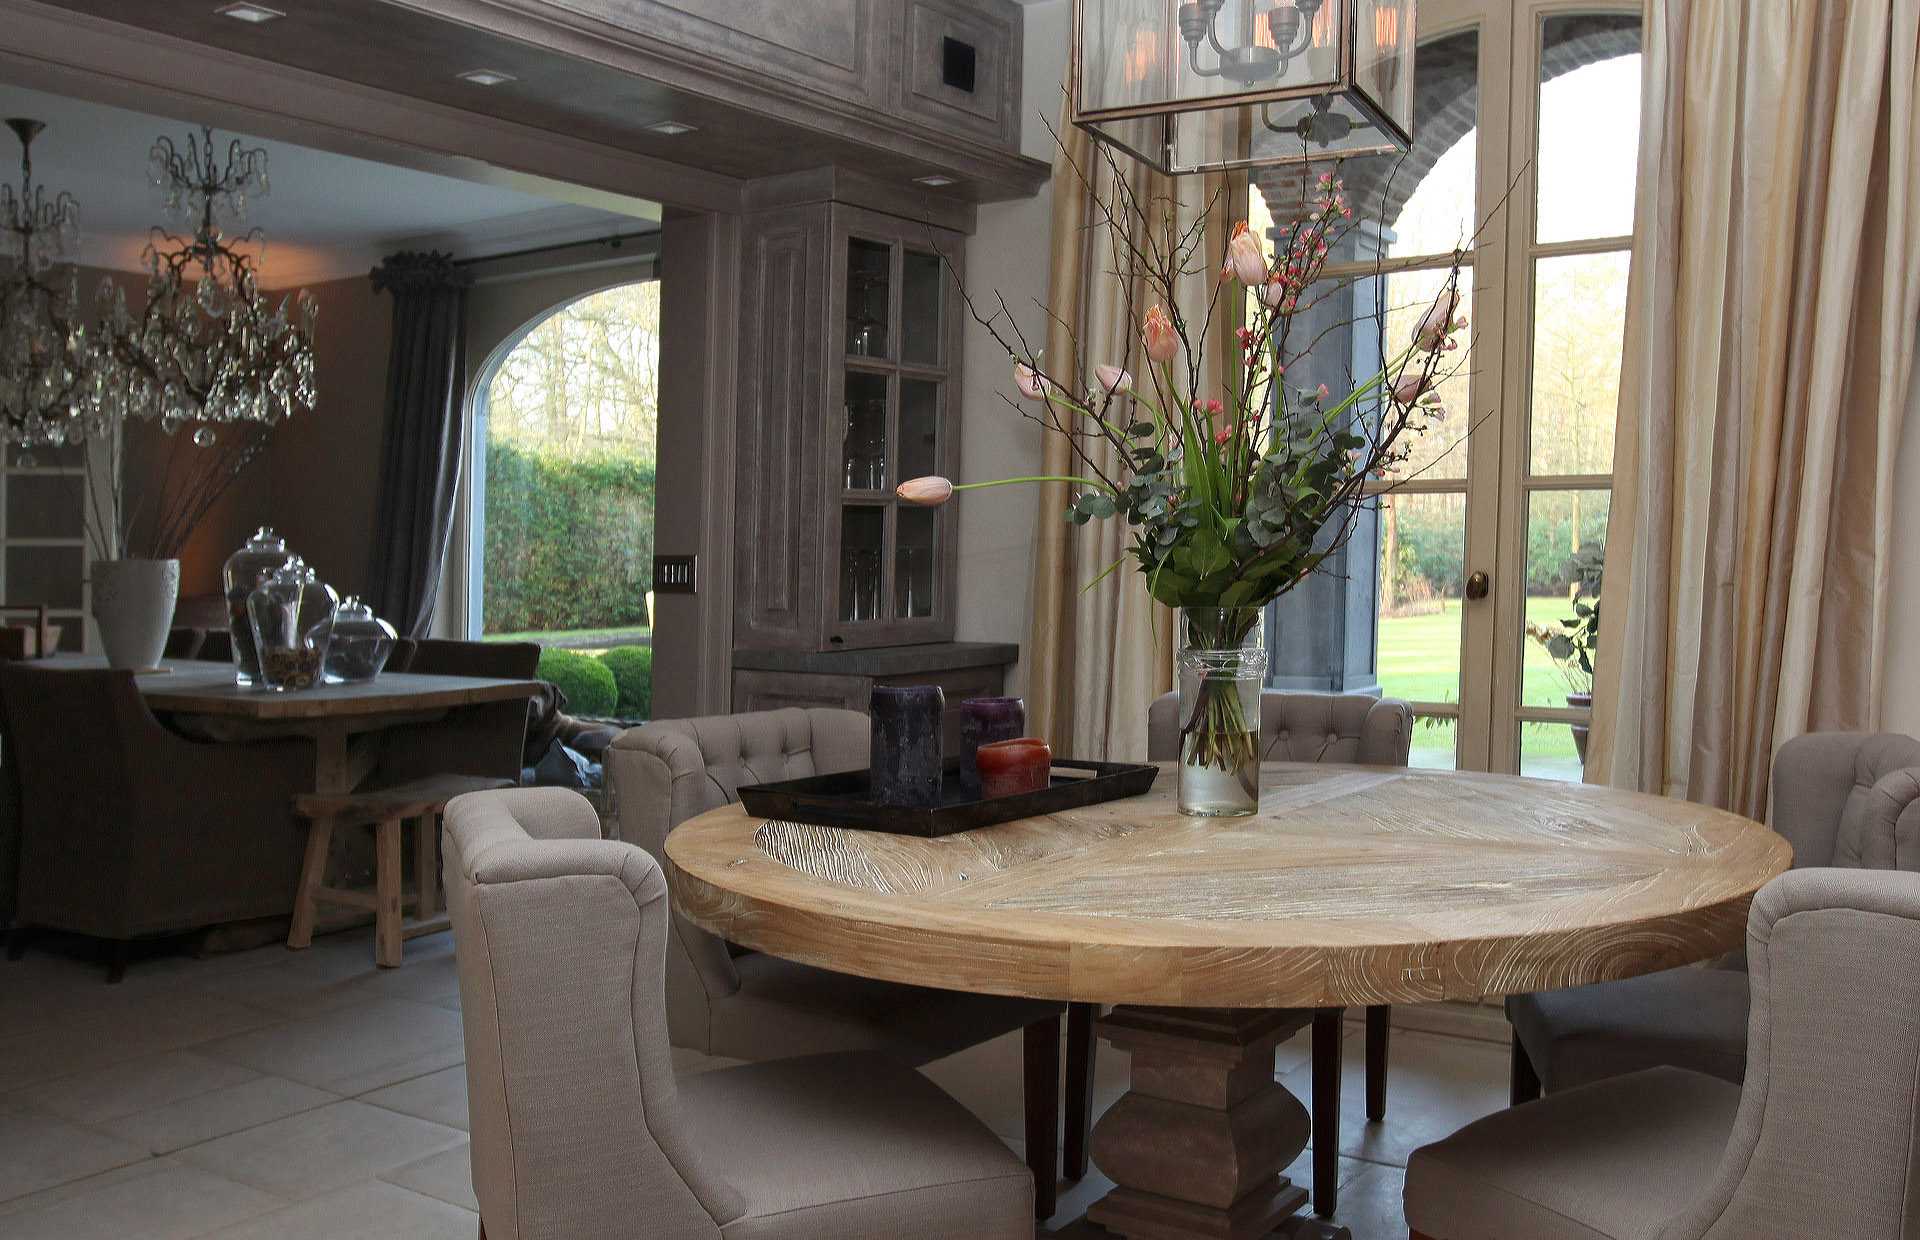 Country kitchen and livingroom in Kalmthout - Marcotte Style